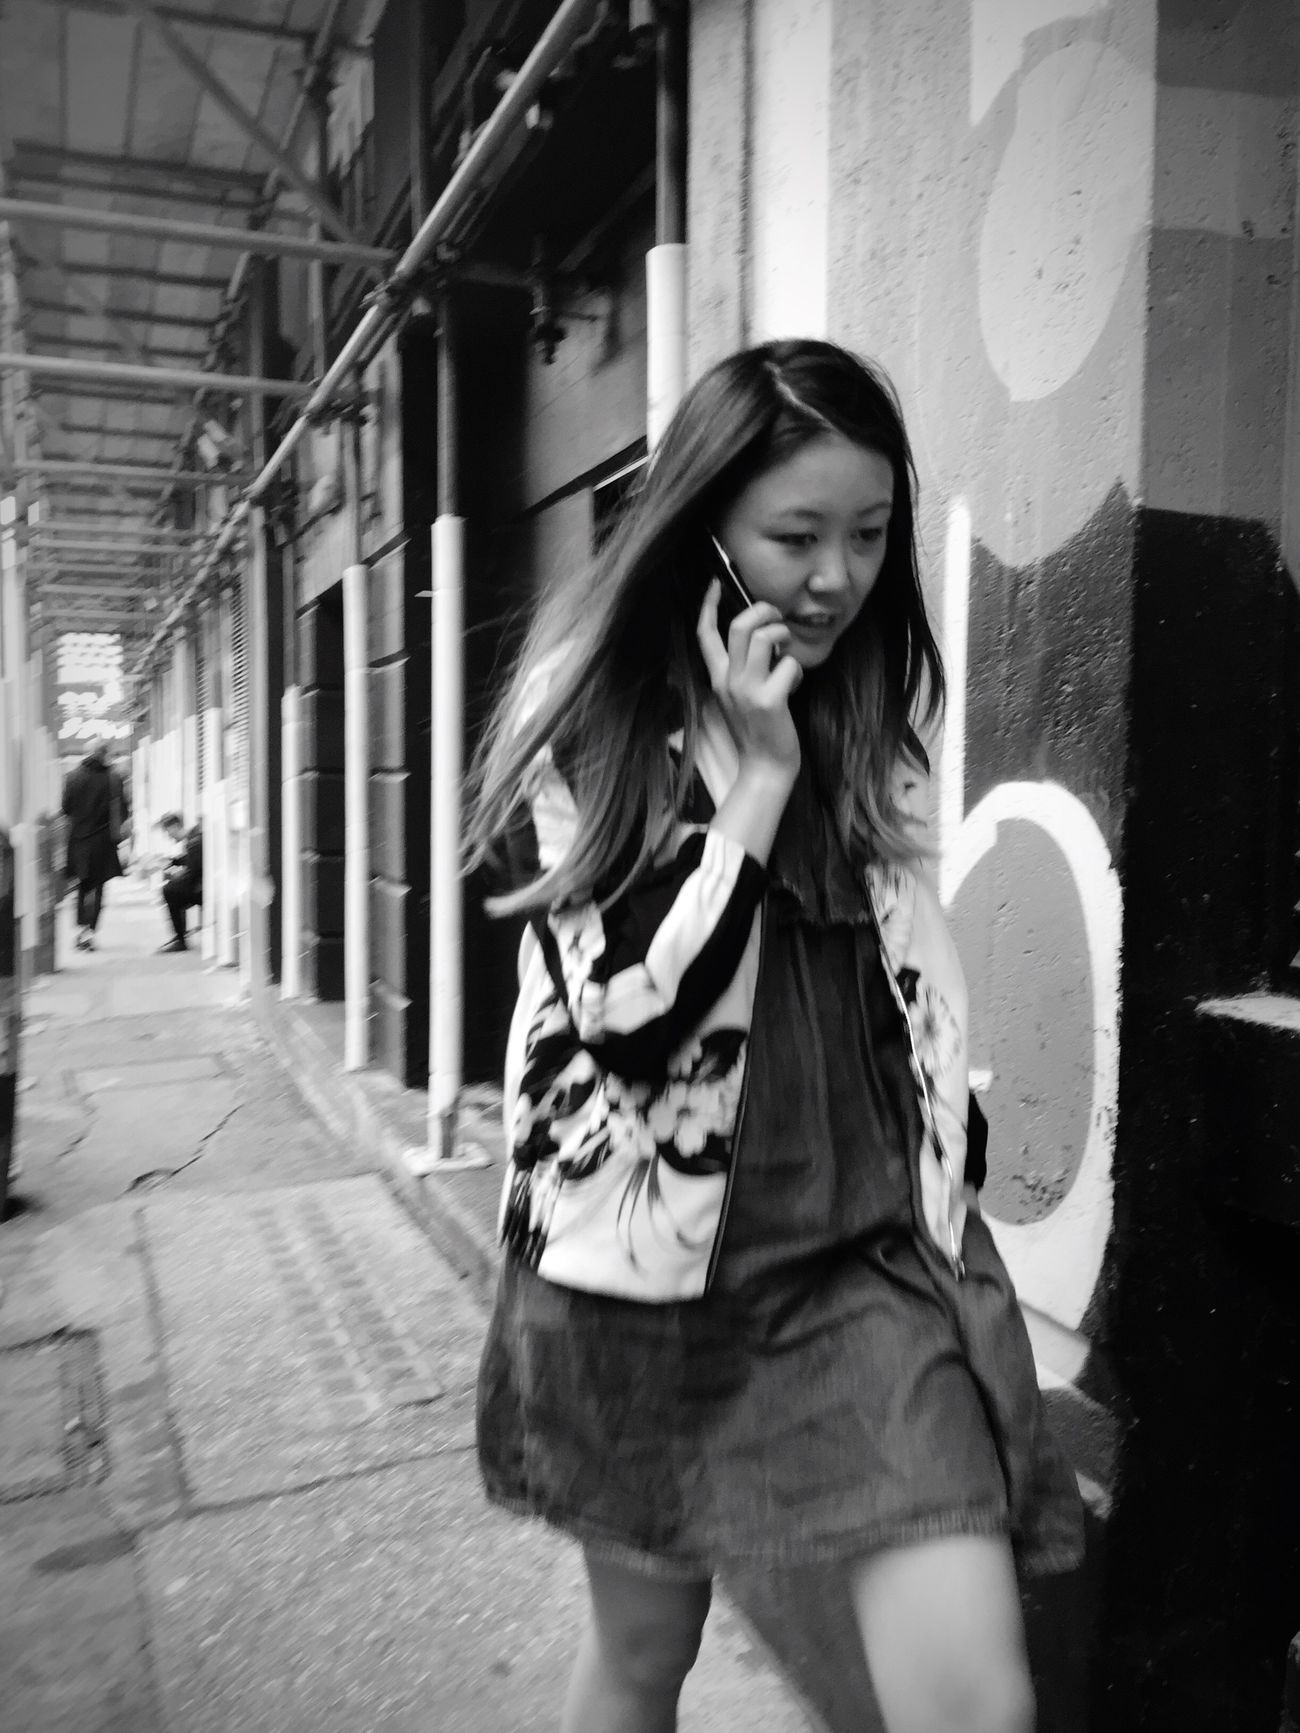 Streetphotography Candid Blackandwhite Shootermag_uk Shootermag Monochrome Streetphoto_bw